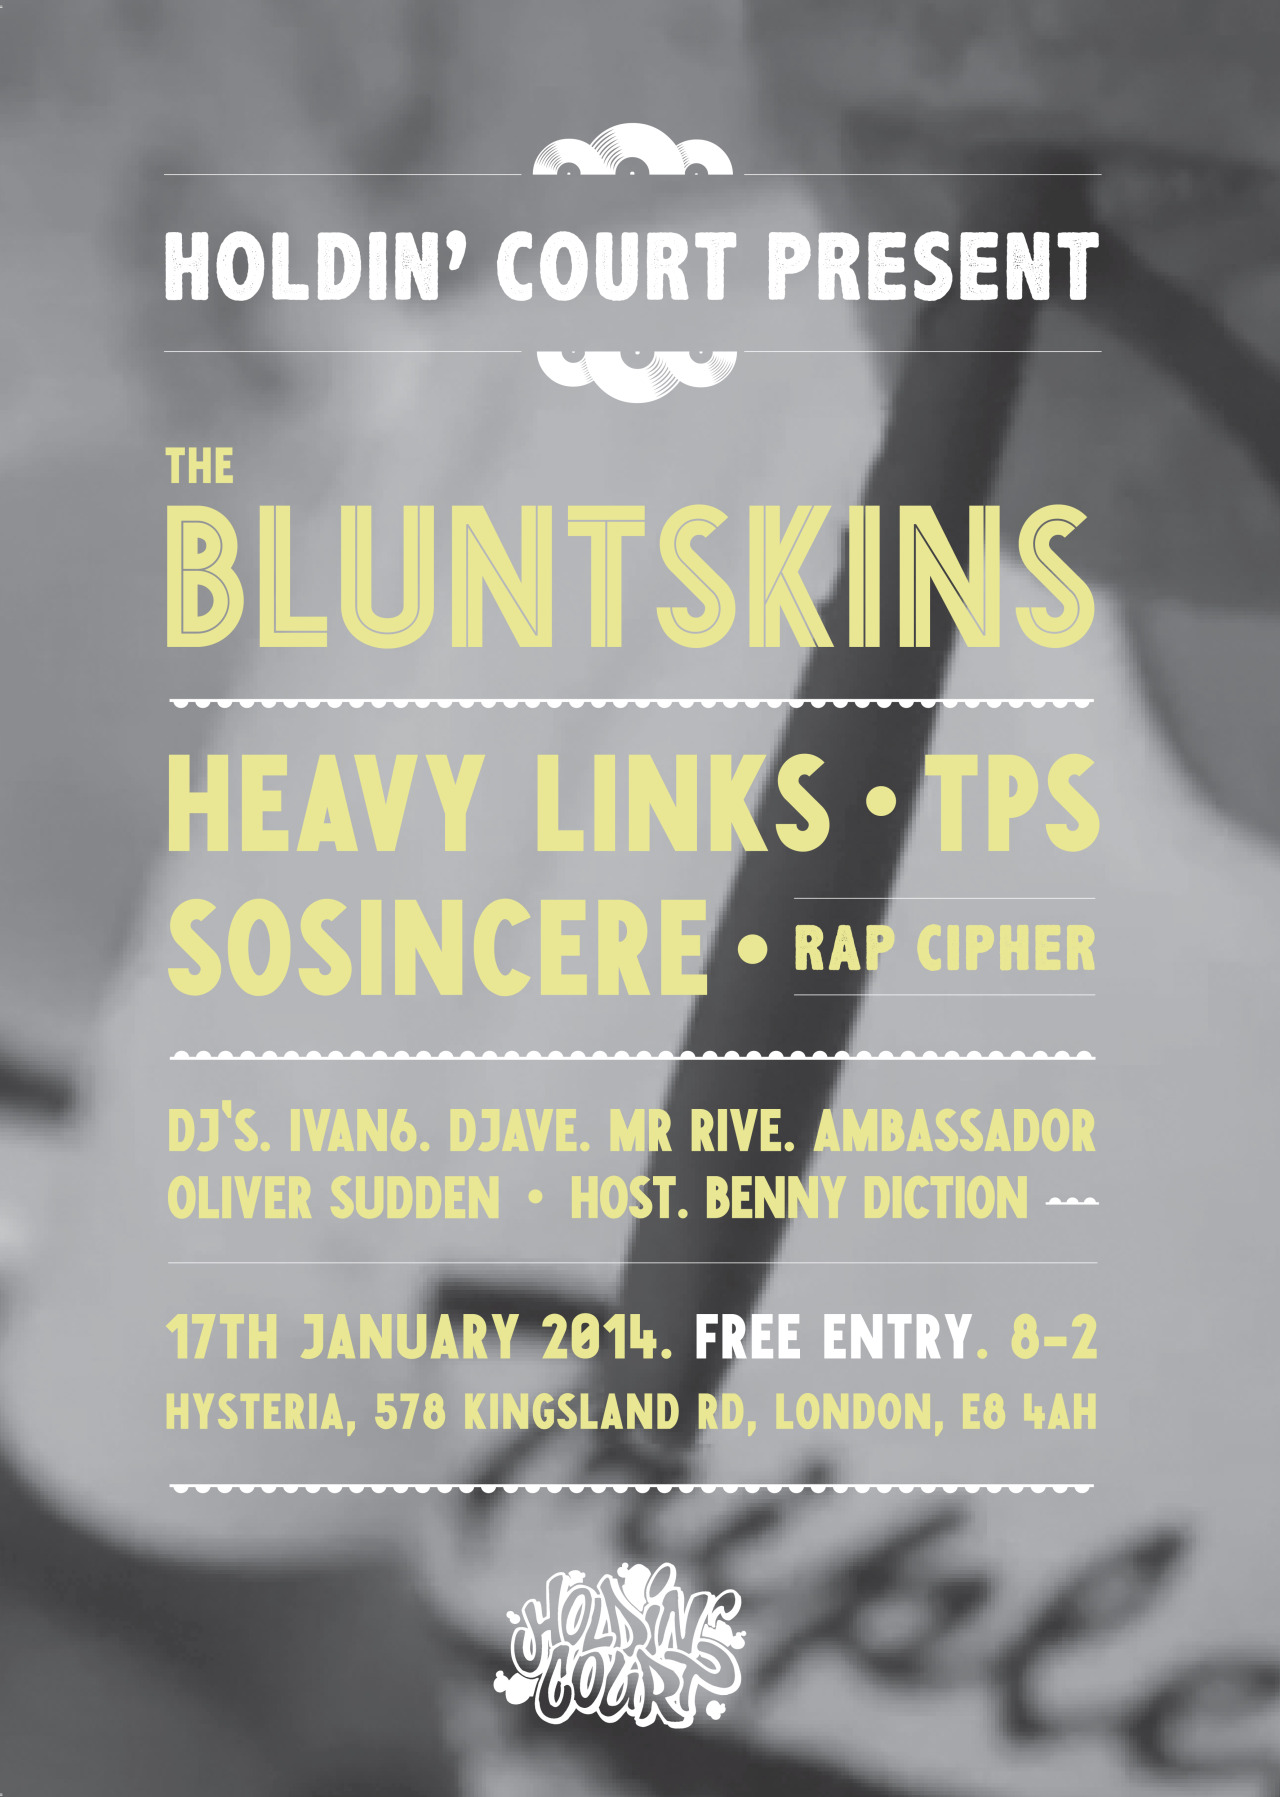 HOLDIN' COURT LONDON     We're back in 2014 with our first ever independent London show!   Providing hip hop heads with a perfect start to 2014, we have these dope acts from all over the UK performing for you, as well as a late addition to the line-up coming all the way from LA!     Click above flyer to visit FB events page.